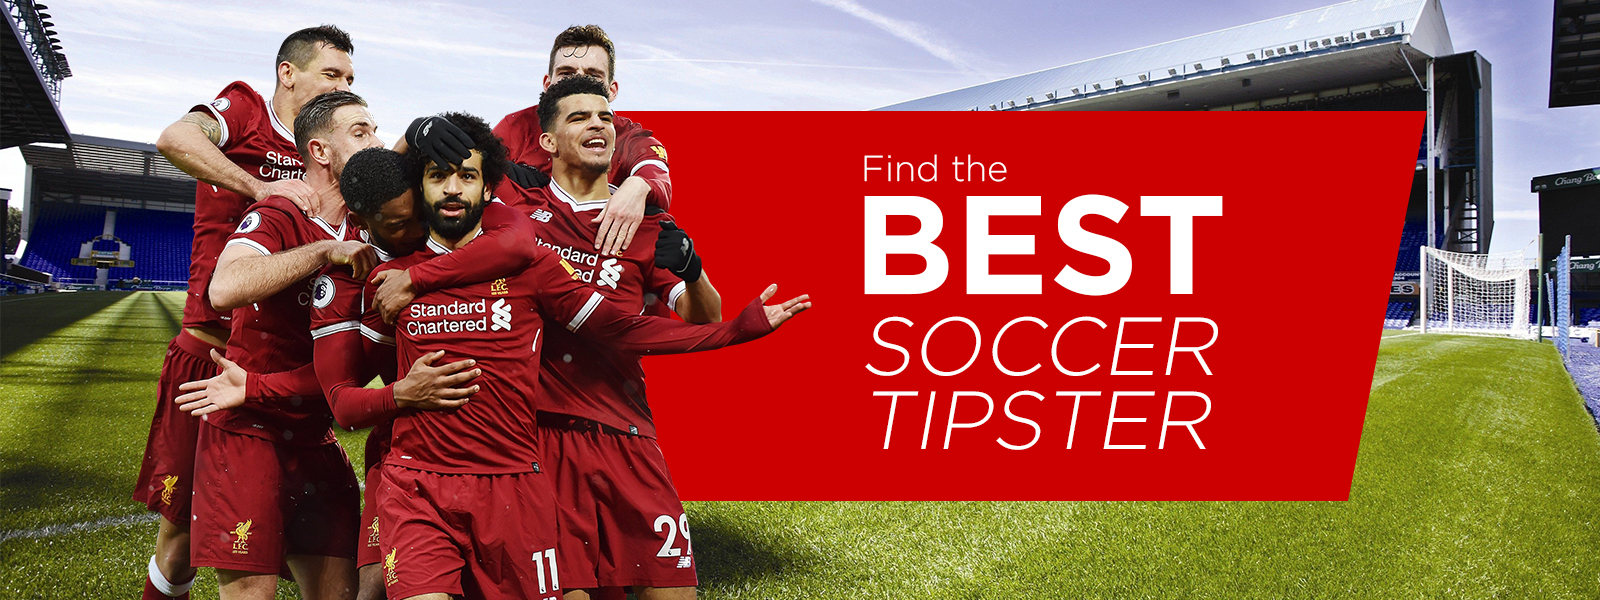 Learn How To Find The Best Soccer Tipster